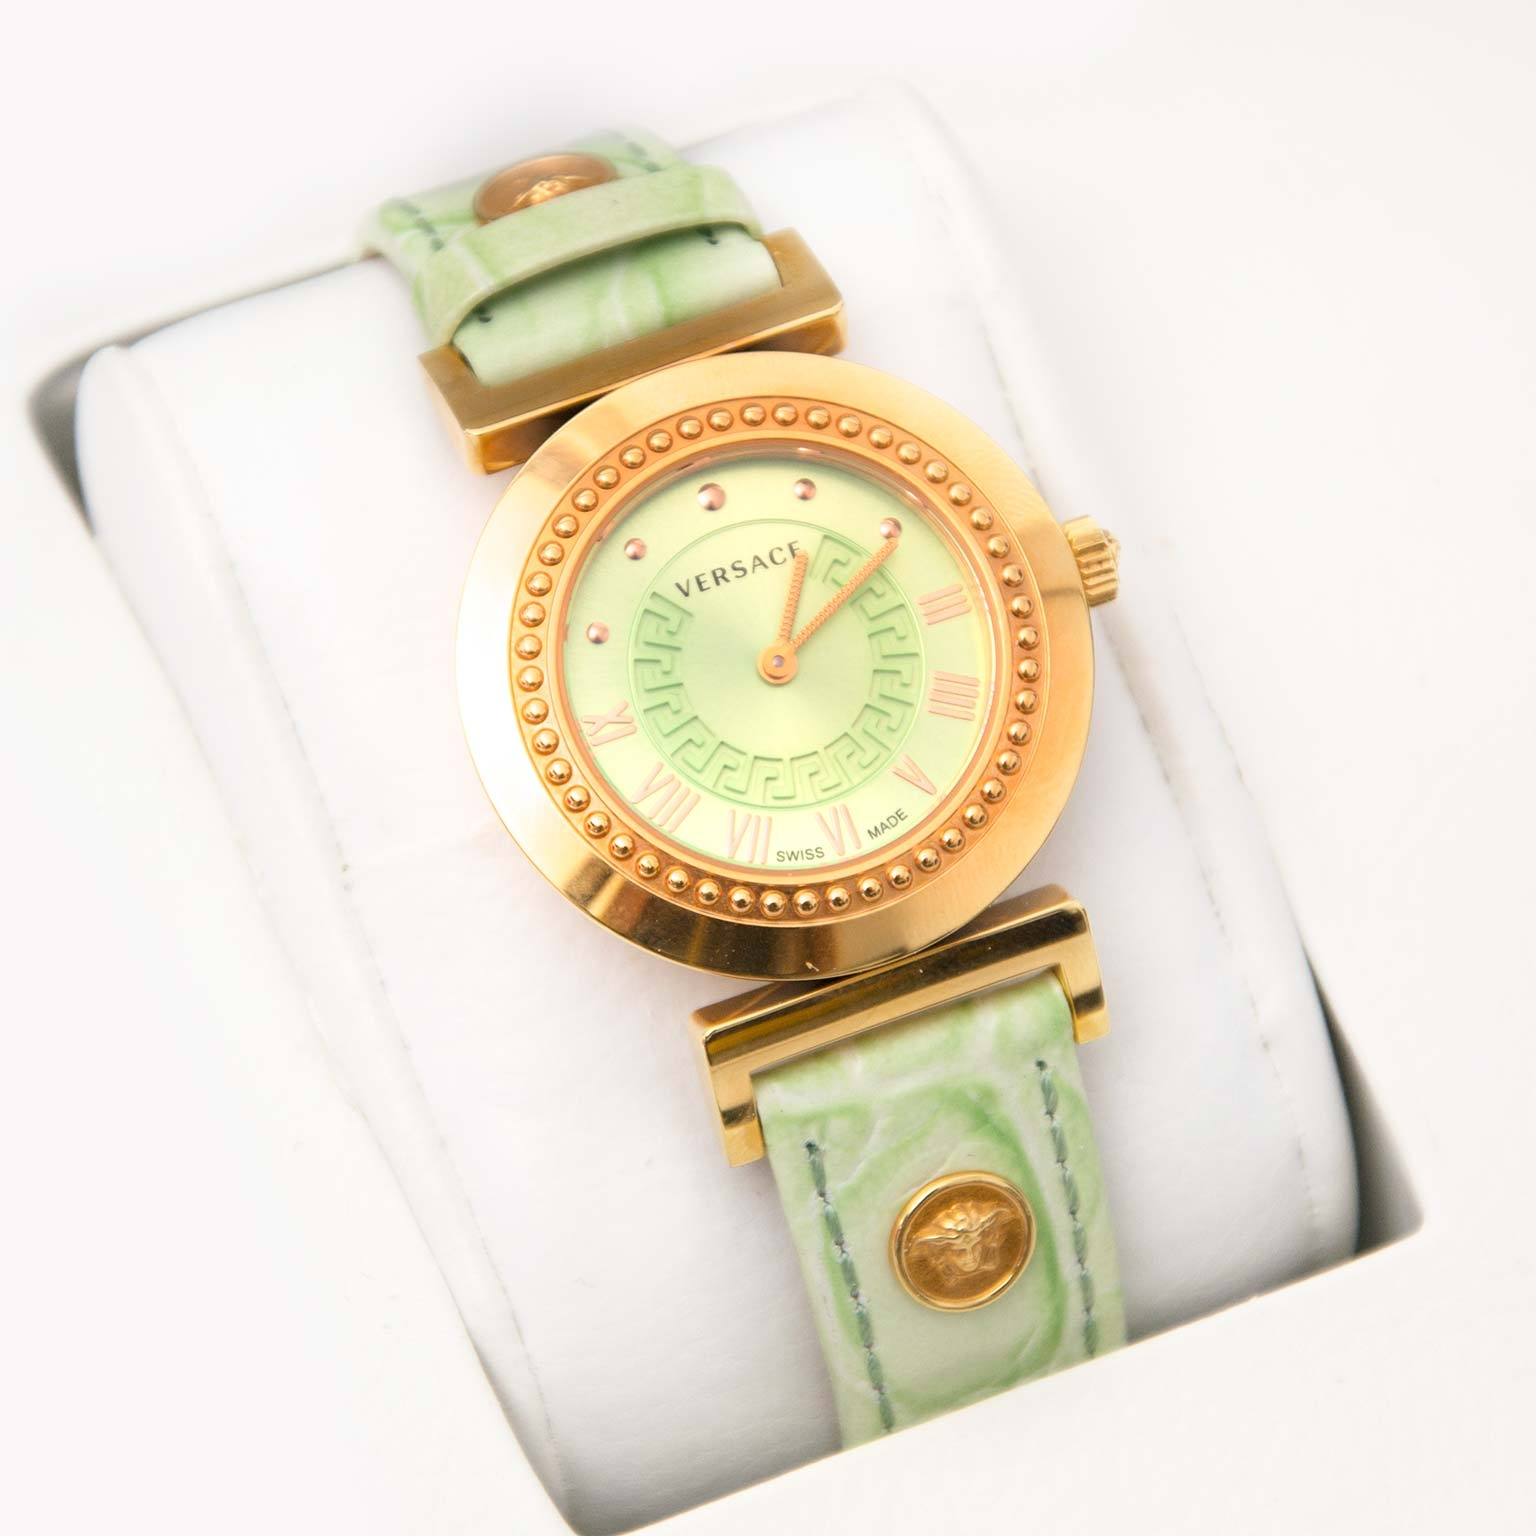 shop safe online Versace Cleopatra Mother Of Pearl Dial Watch